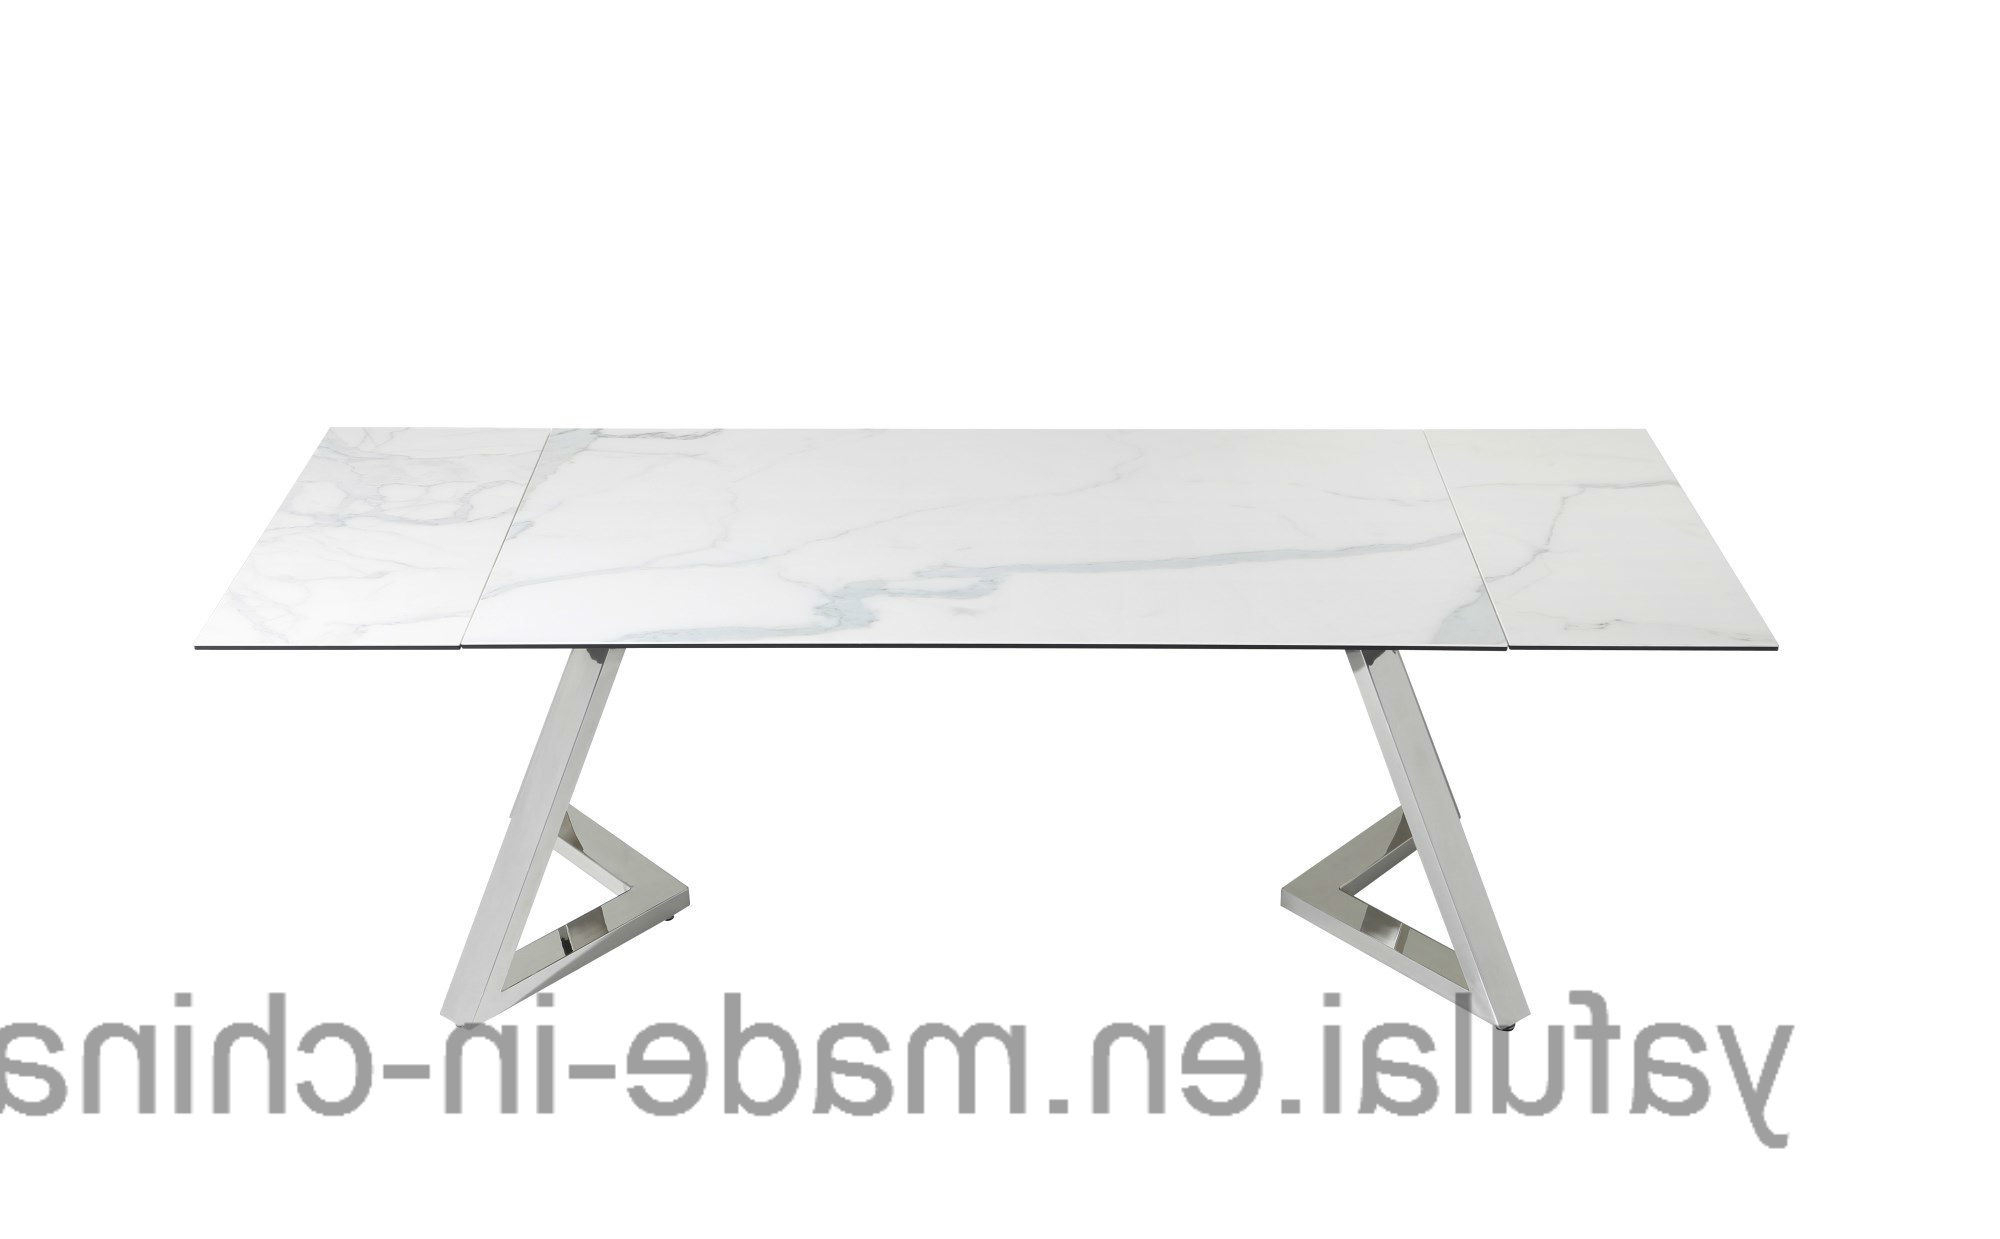 [%[Hot Item] Modern Extension Tempered Glass Ceramic Top Stainless Steel Dining Table Within Well Liked Modern Glass Top Extension Dining Tables In Stainless|Modern Glass Top Extension Dining Tables In Stainless In Current [Hot Item] Modern Extension Tempered Glass Ceramic Top Stainless Steel Dining Table|Popular Modern Glass Top Extension Dining Tables In Stainless Inside [Hot Item] Modern Extension Tempered Glass Ceramic Top Stainless Steel Dining Table|Well Known [Hot Item] Modern Extension Tempered Glass Ceramic Top Stainless Steel Dining Table With Regard To Modern Glass Top Extension Dining Tables In Stainless%] (View 5 of 25)